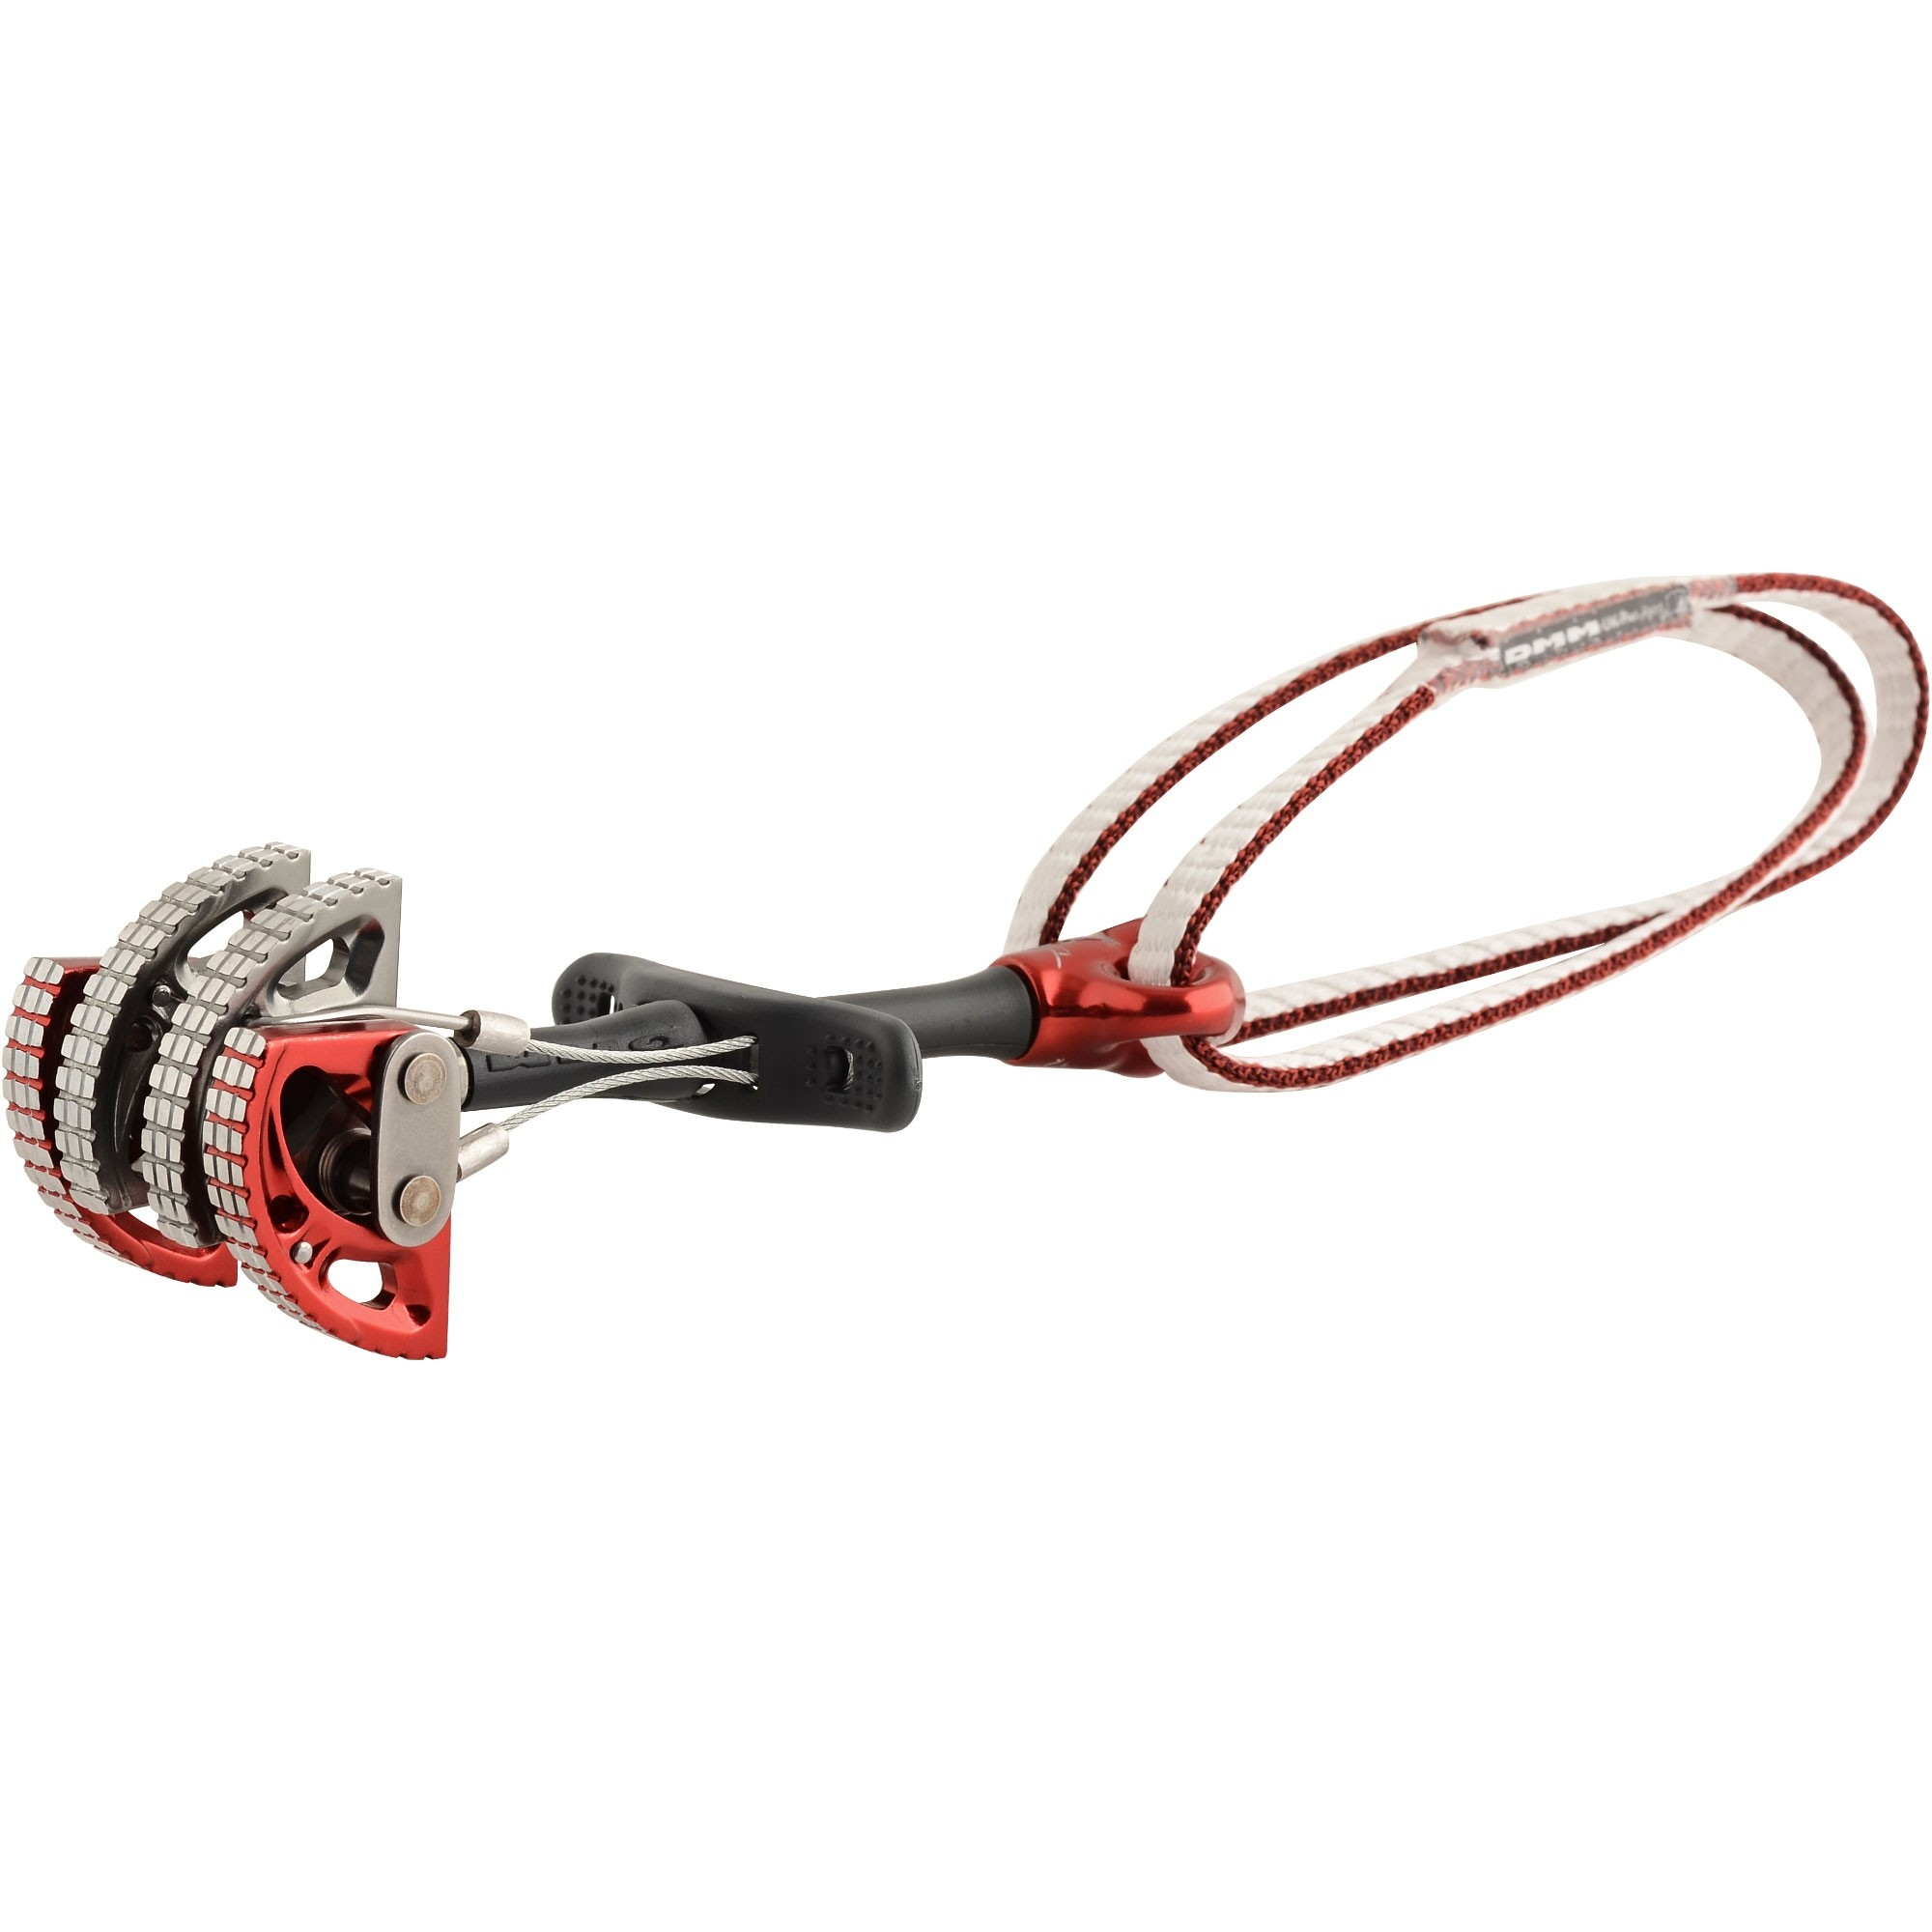 DMM Dragon Cam II - size 3 - Red